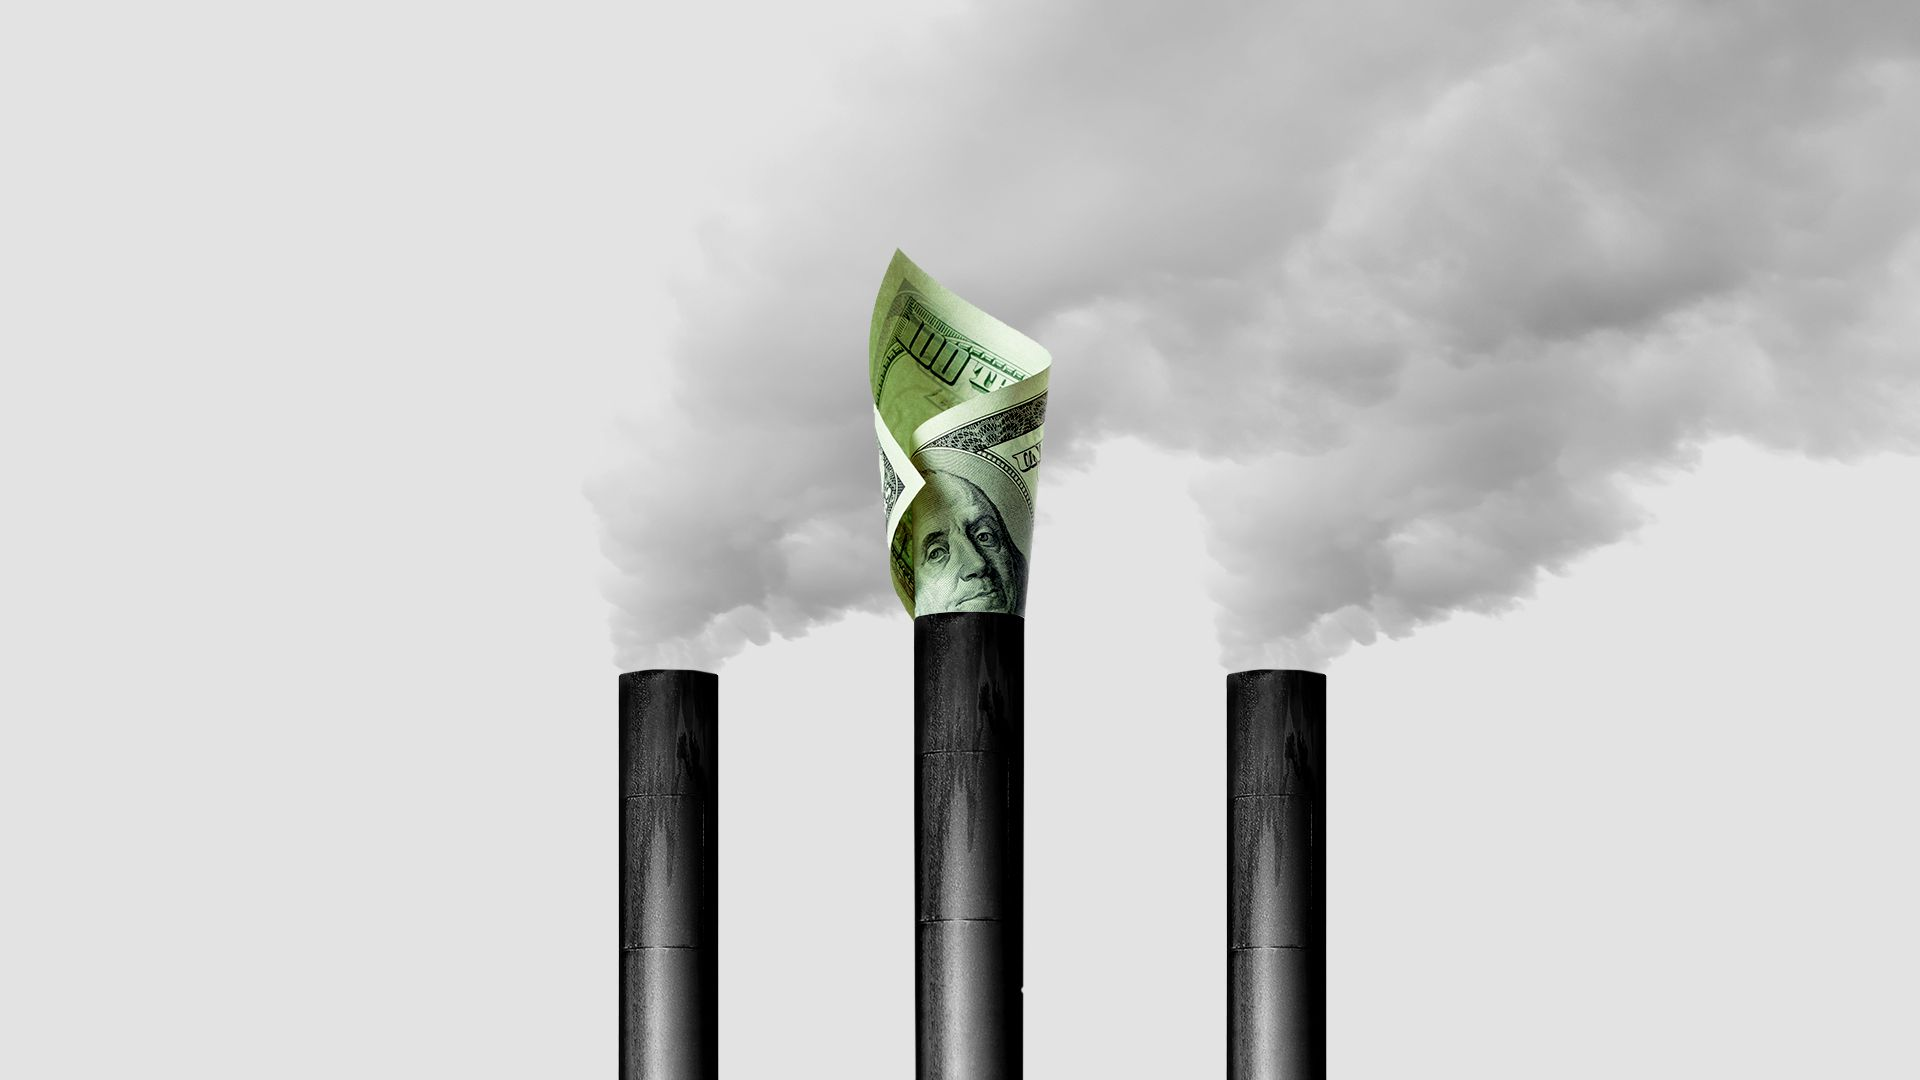 Illustration of rolled up money blocking a smoke stack